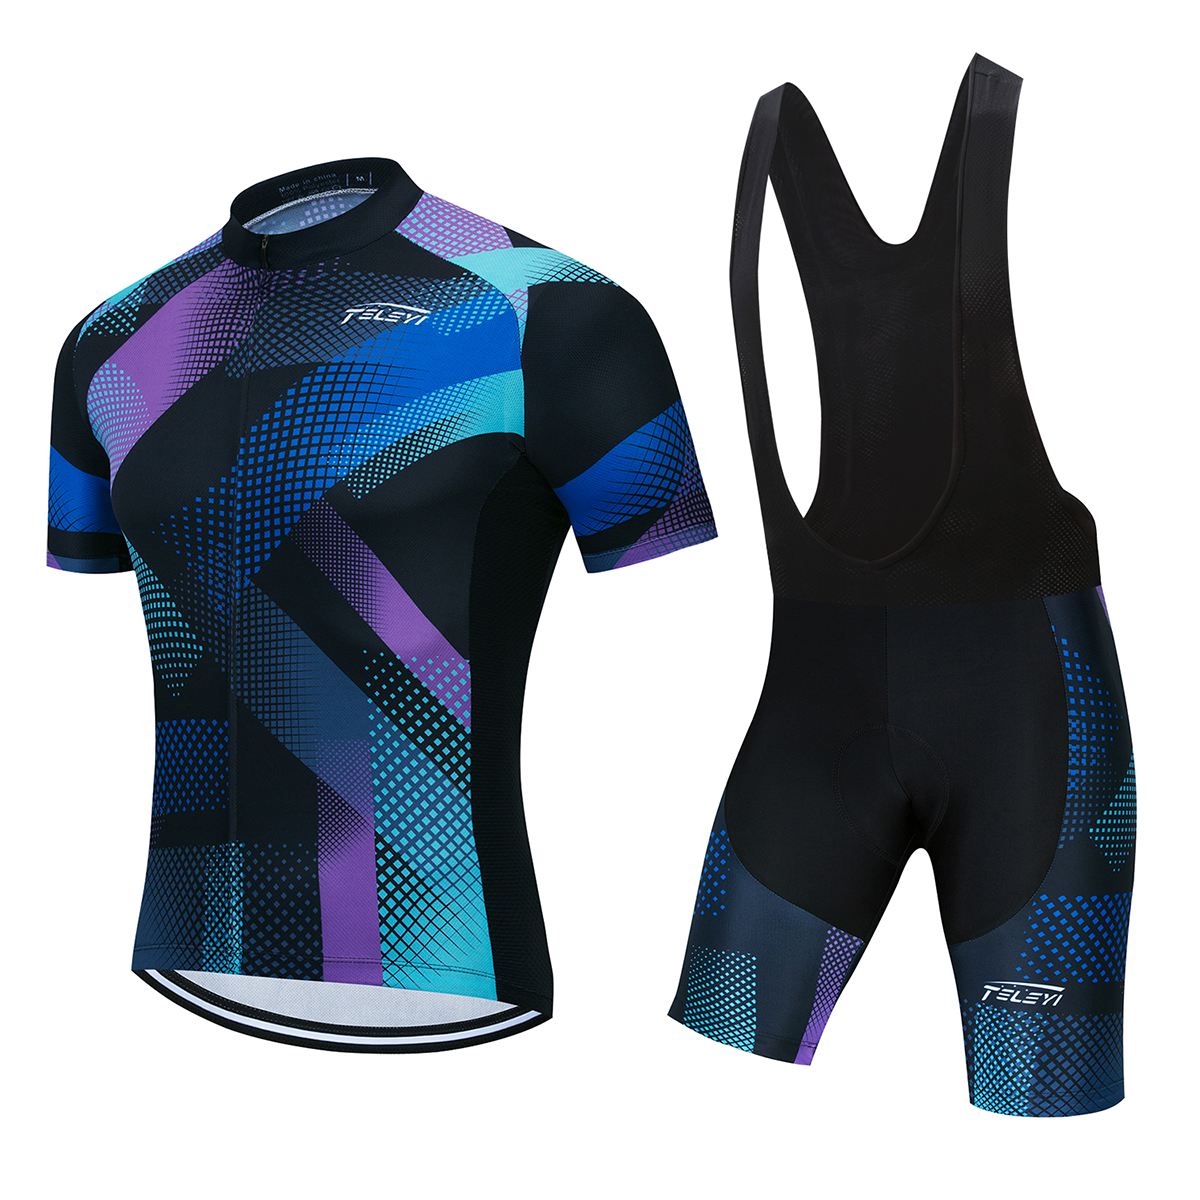 Factory Customized Cycling Jersey DIY Short Sleeve Jersey 5D Gel Pad Bib Shorts Bike Racing Team Biker Male Female Cycling Suit